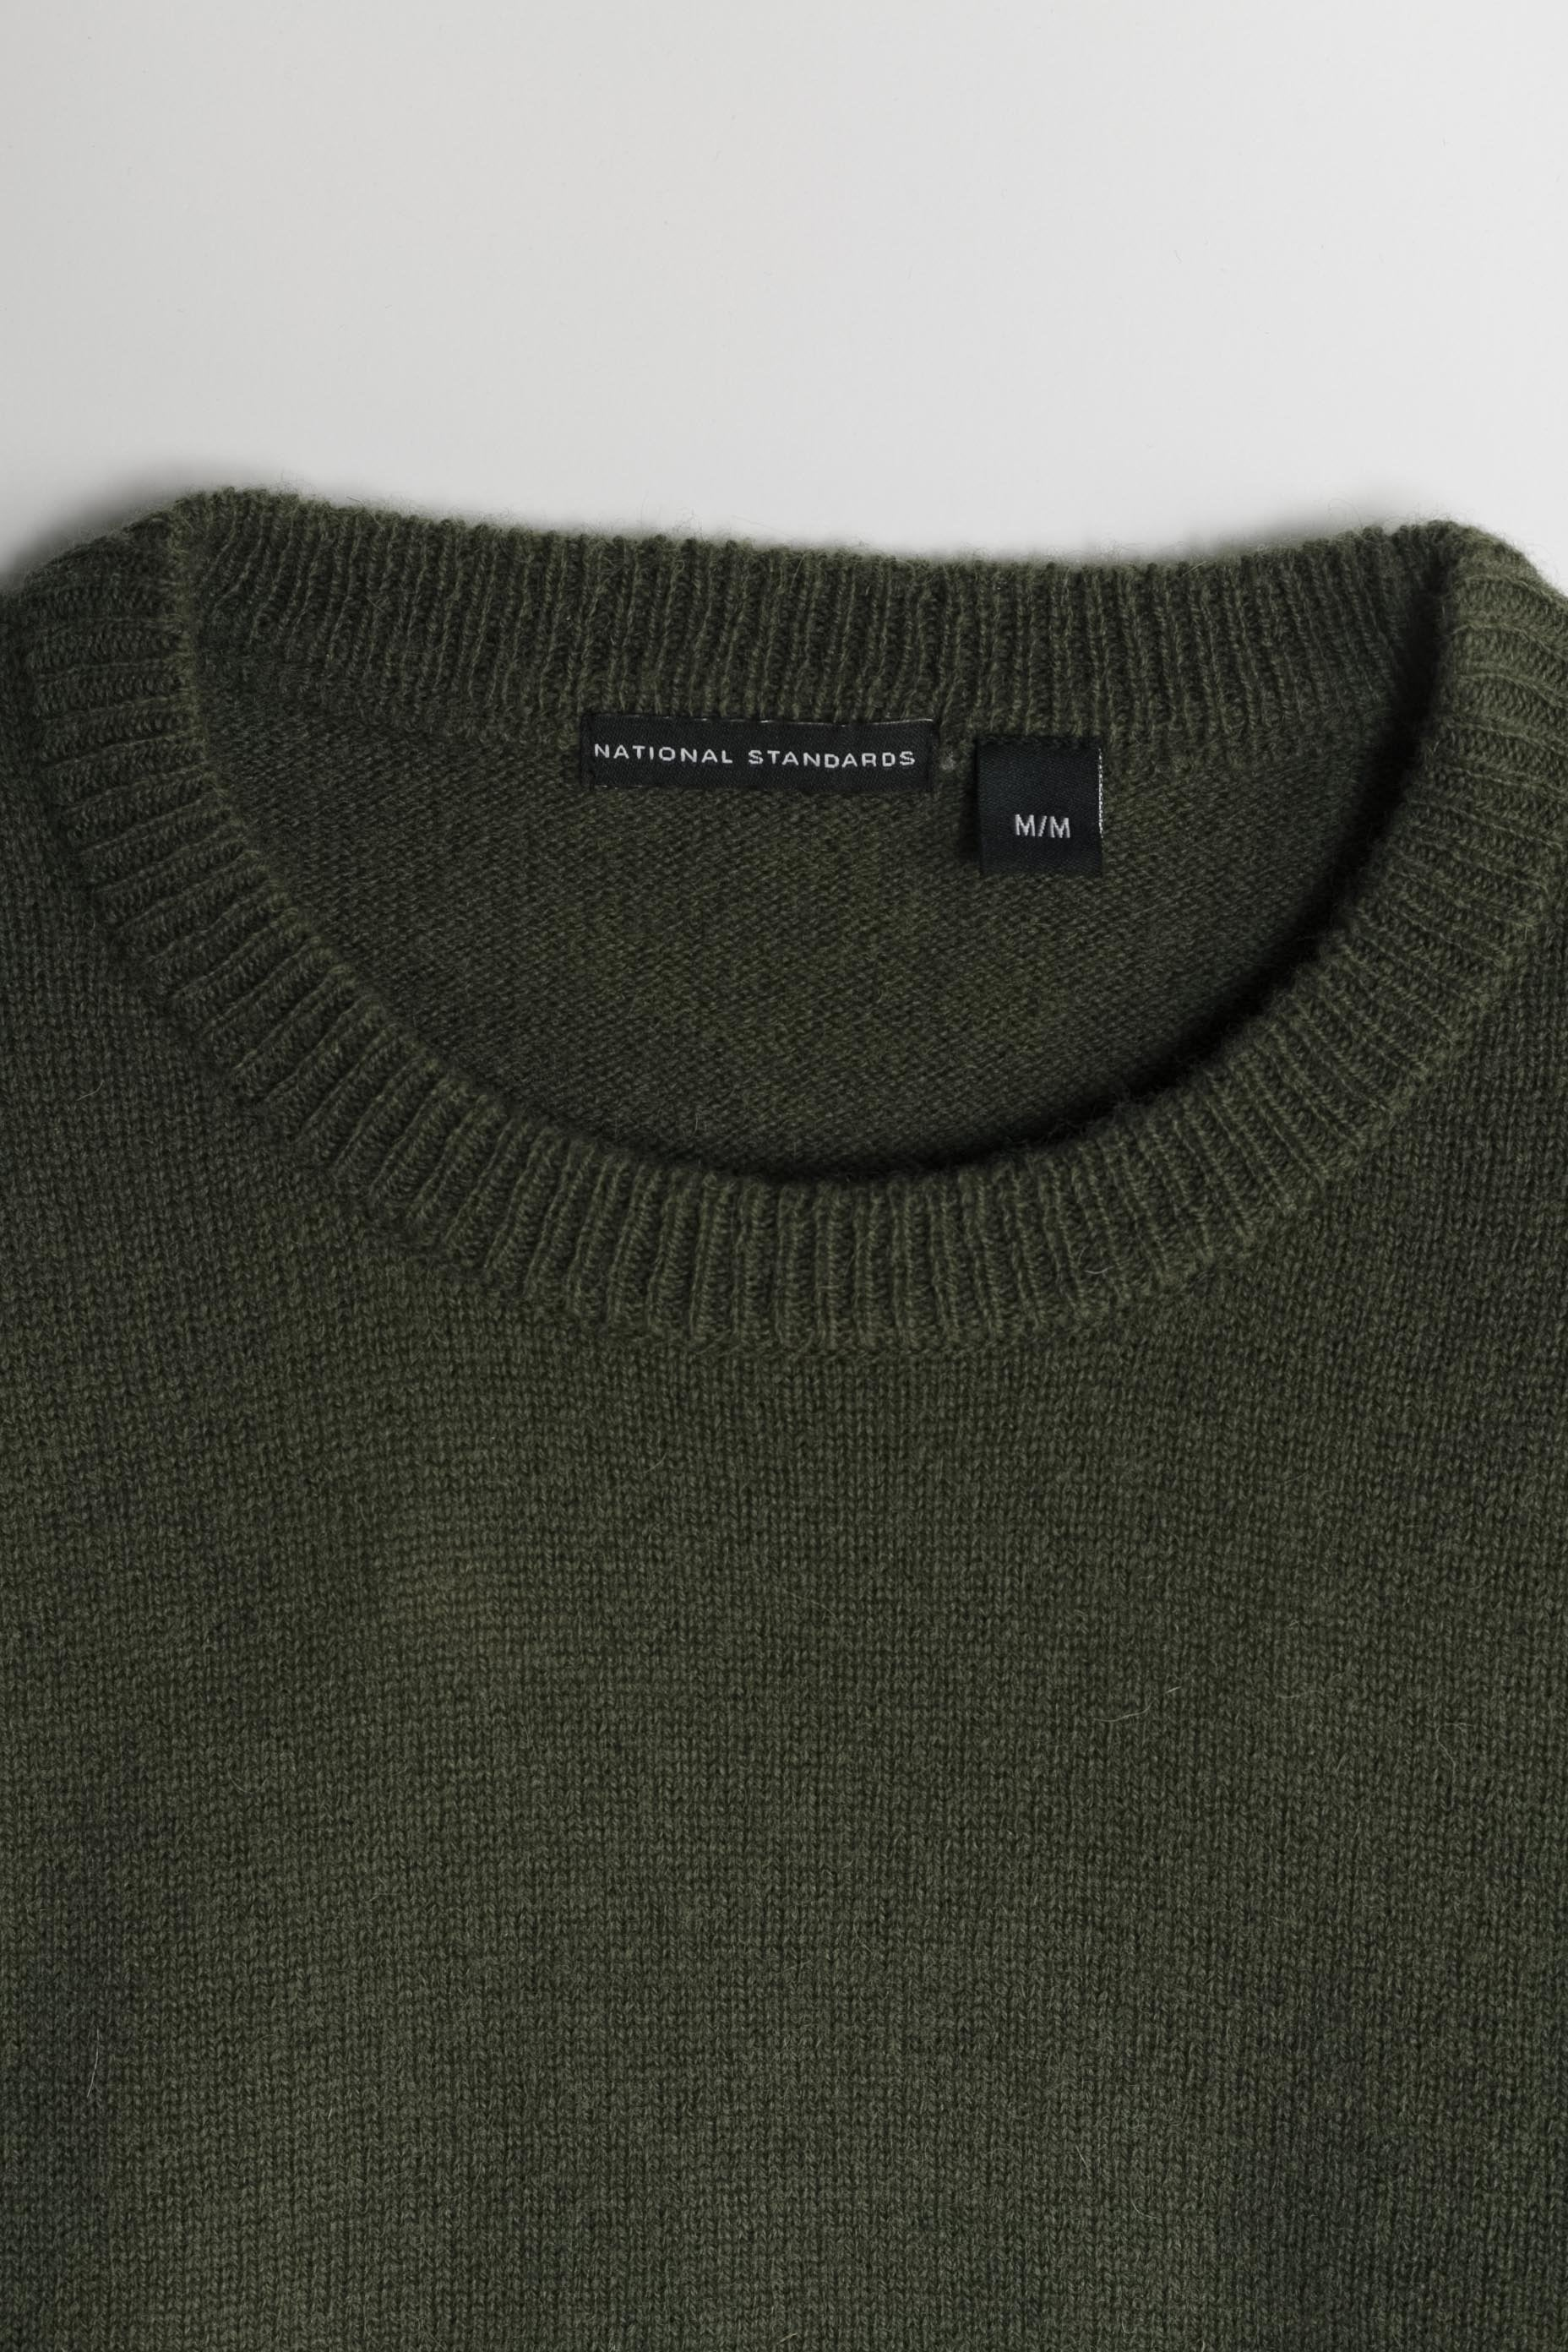 Lambswool Basic Crew in Army Green 02